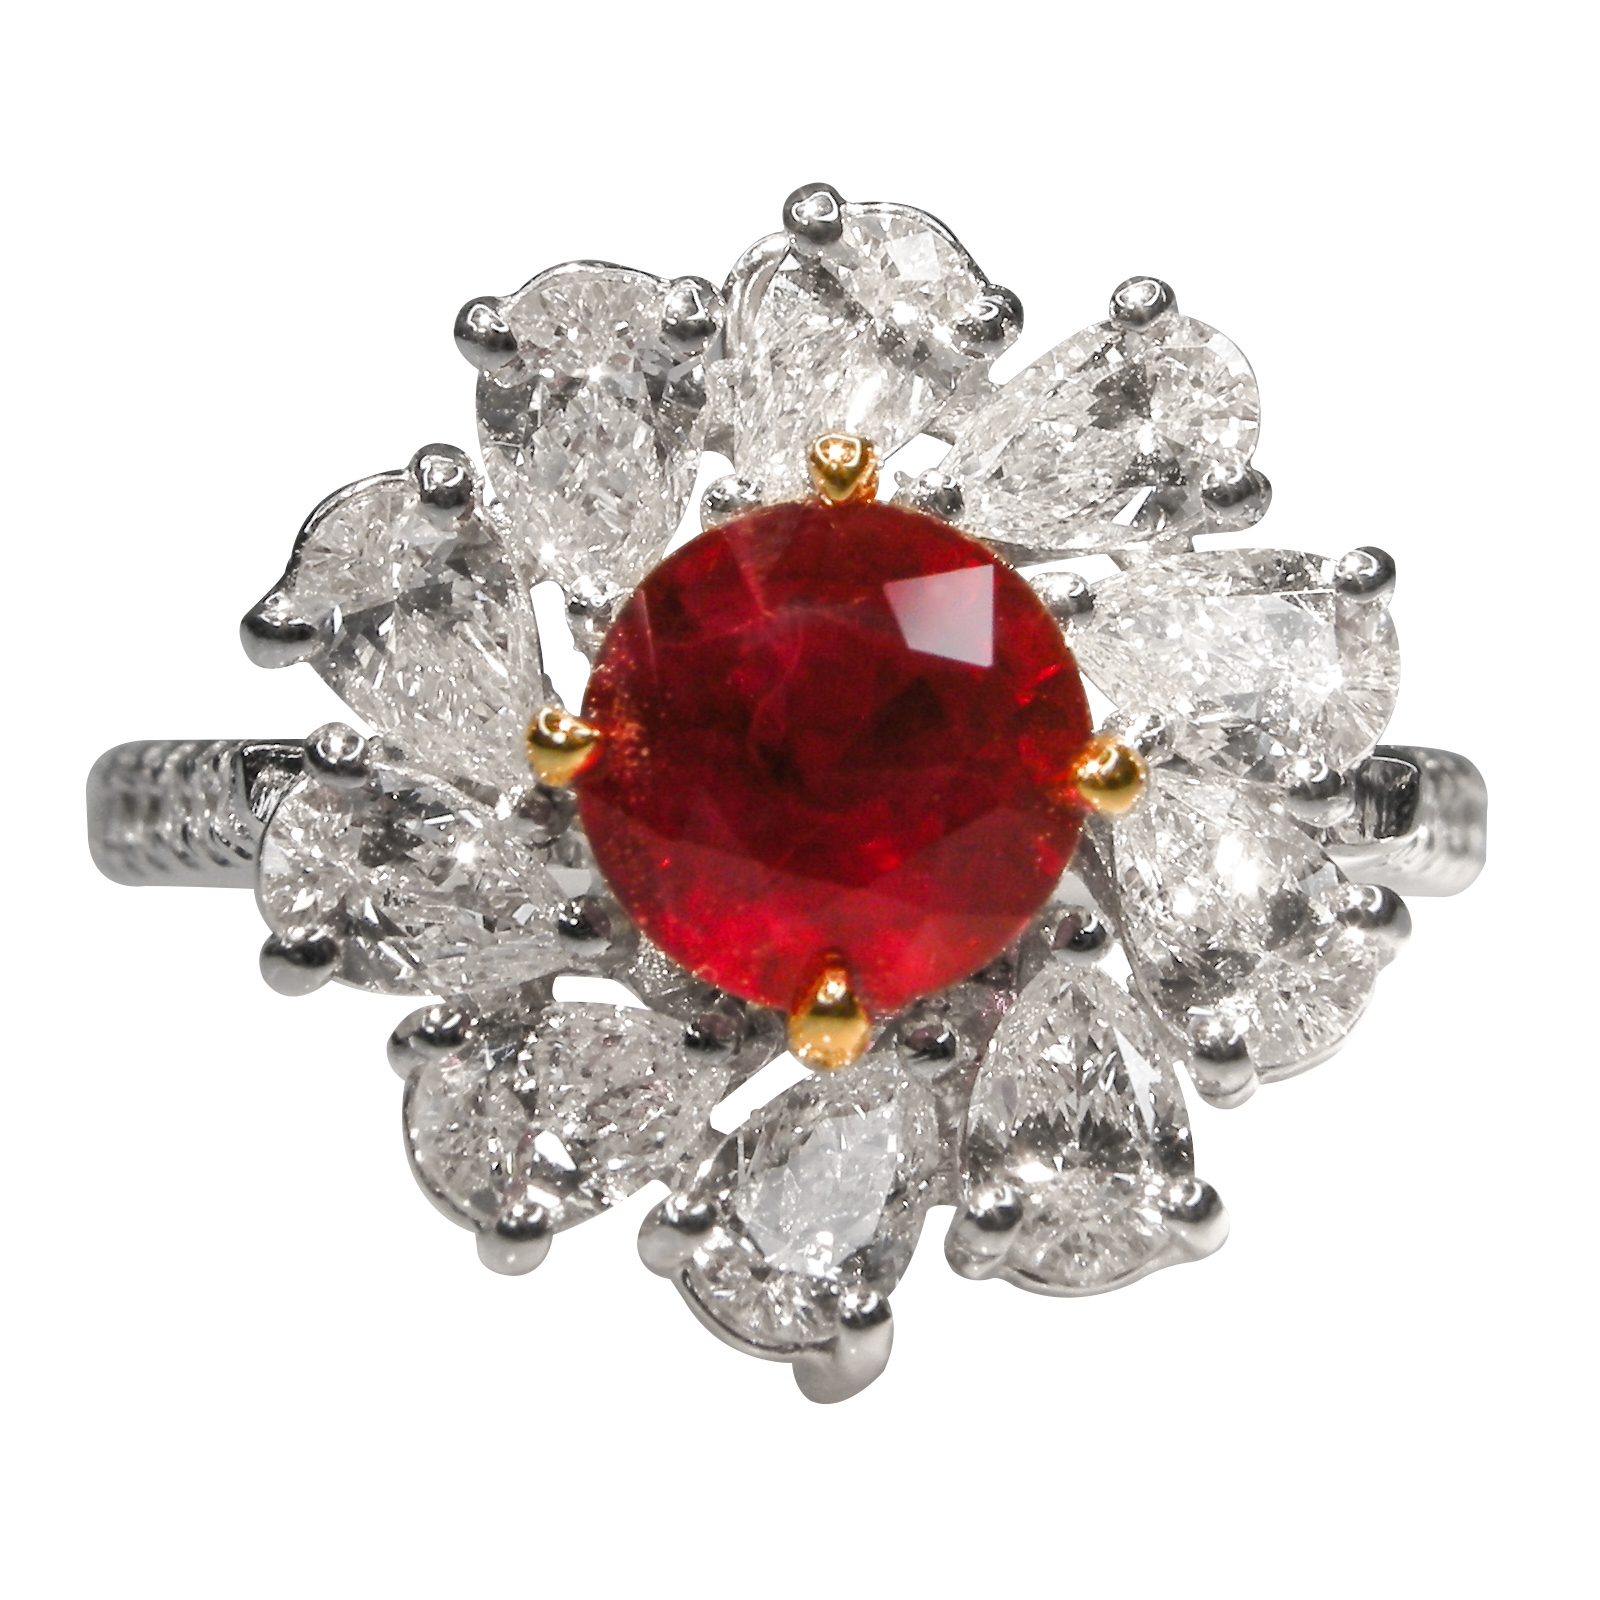 RUBY AND DIAMOND SUN RING BESPOKE FINE JEWELLERY BY SHAHINA HATTA HONG KONG